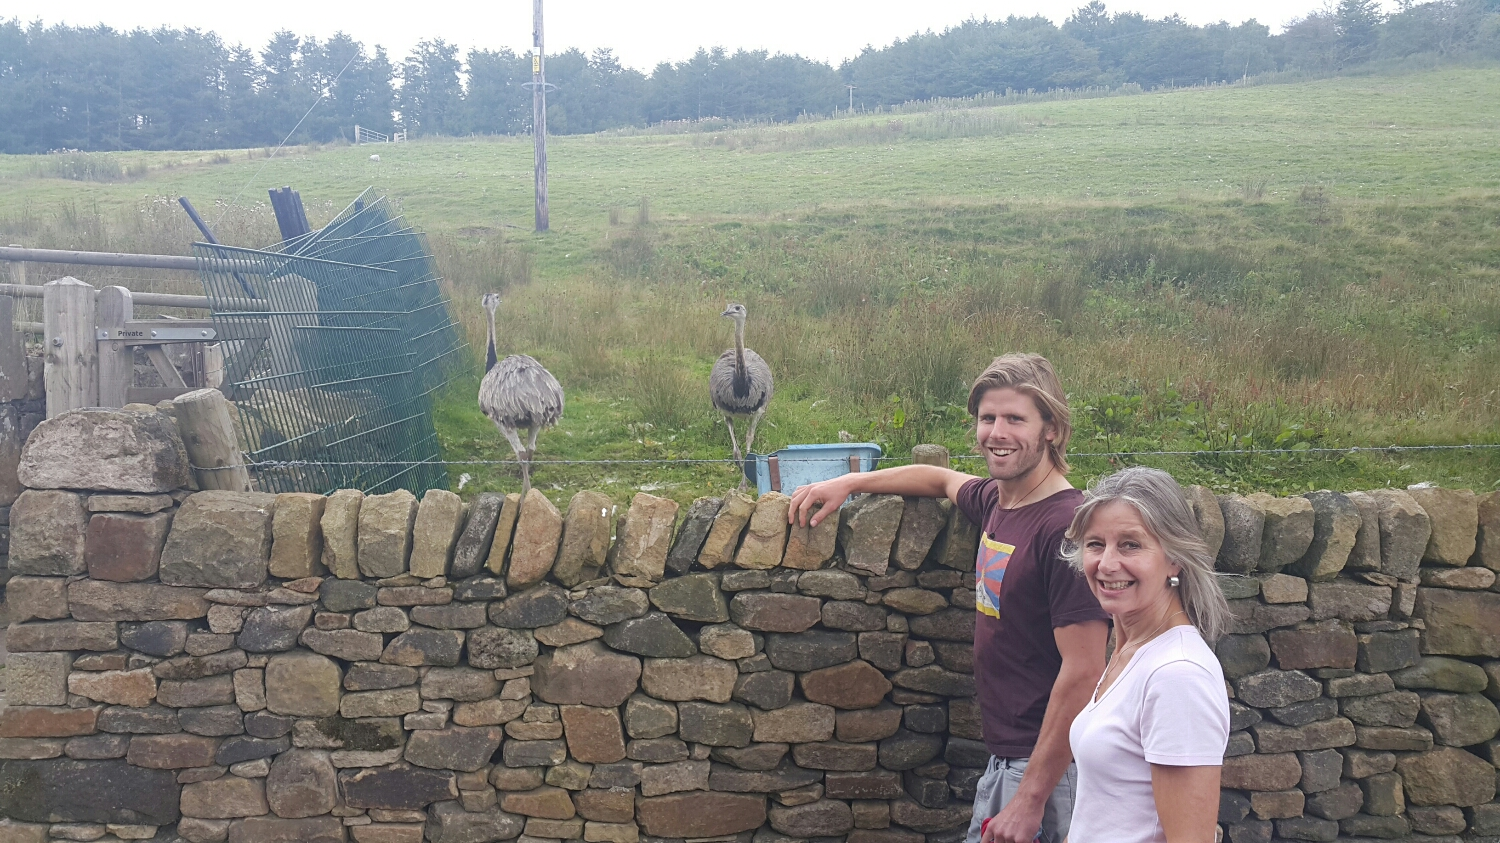 Pete and his mum Paul with some local wildlife. I think these birds are imports!